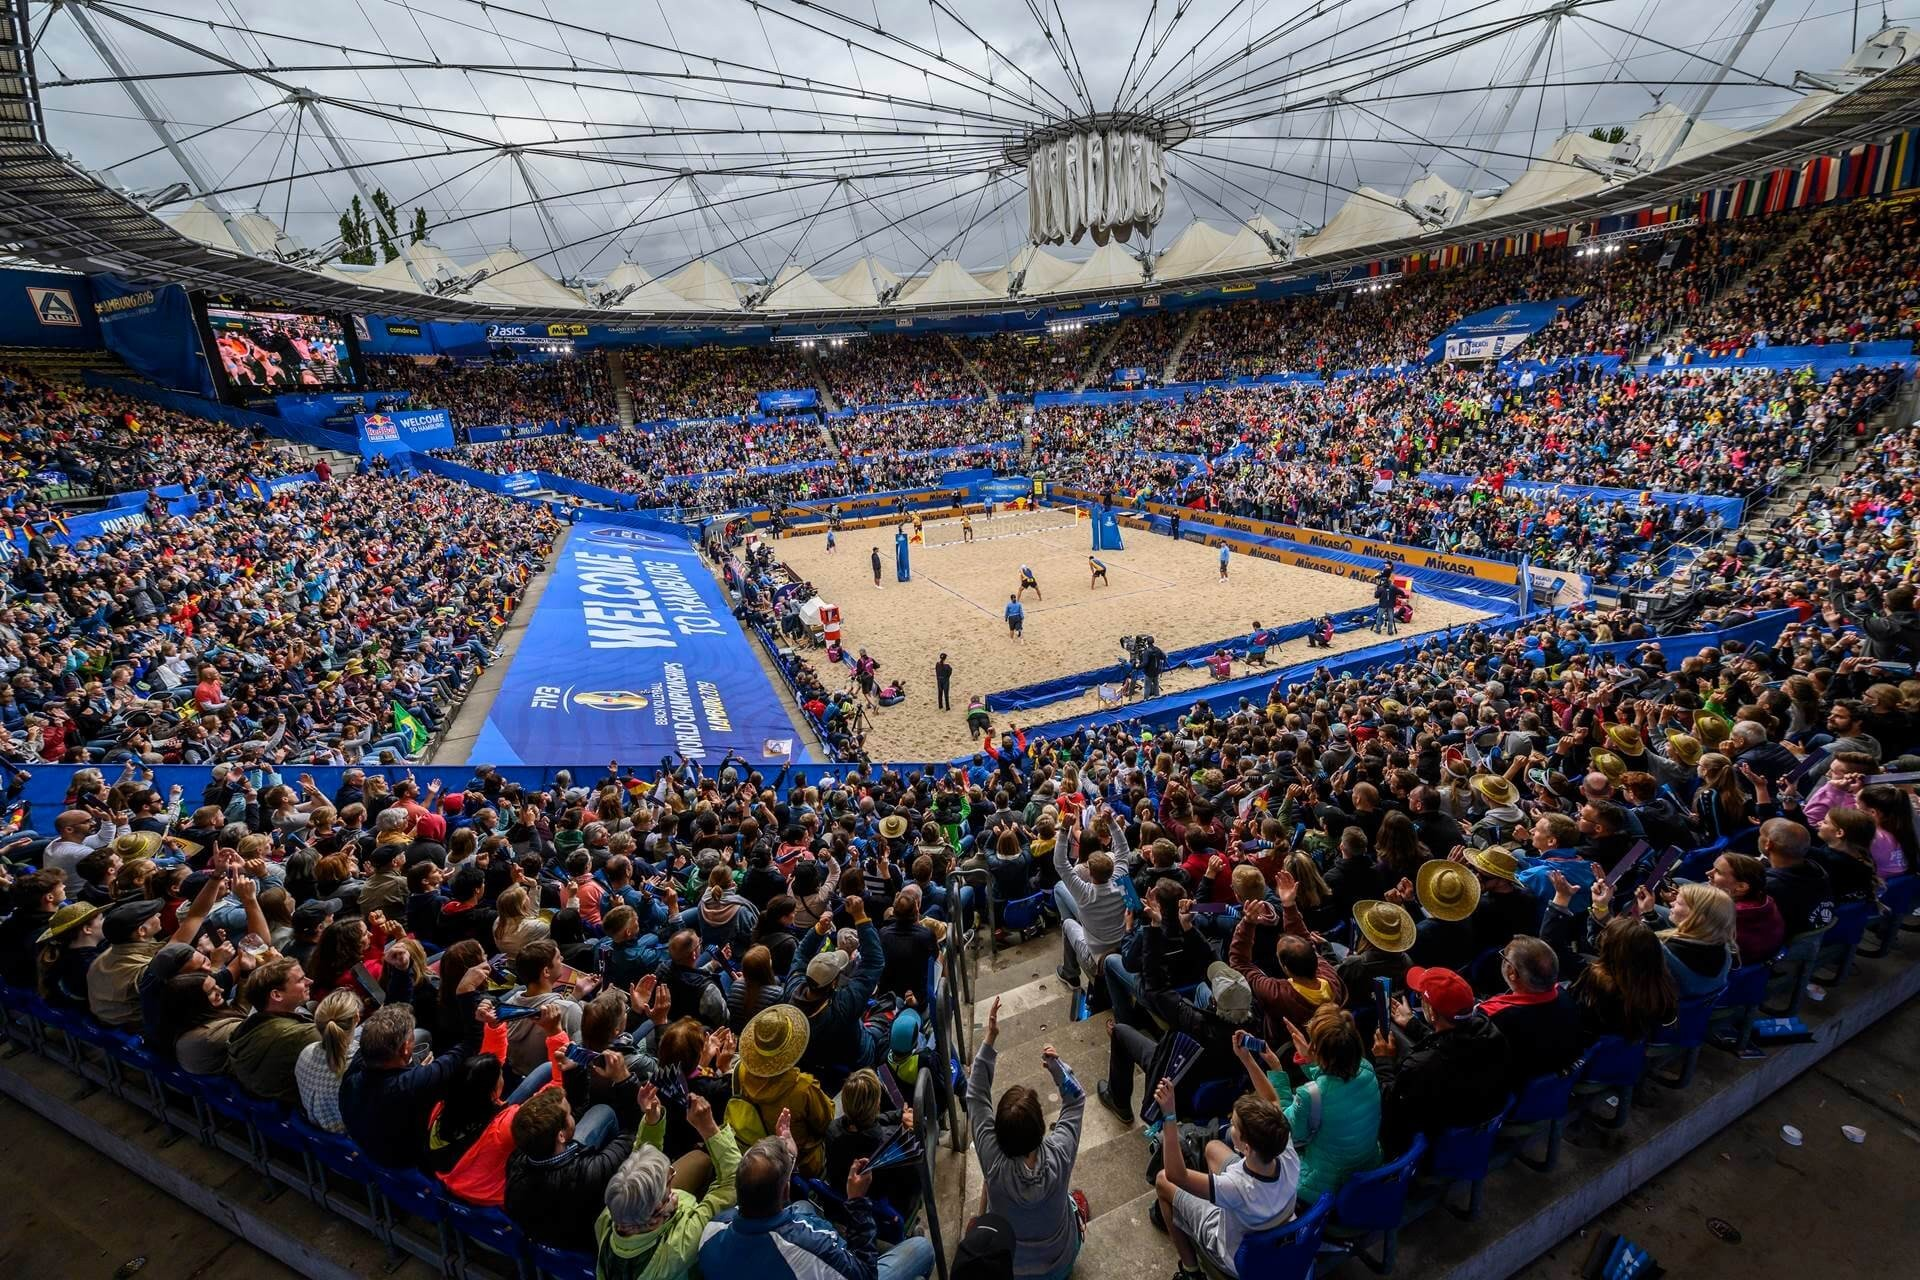 The 2019 World Championships in Hamburg was one the biggest beach volleyball tournaments in history